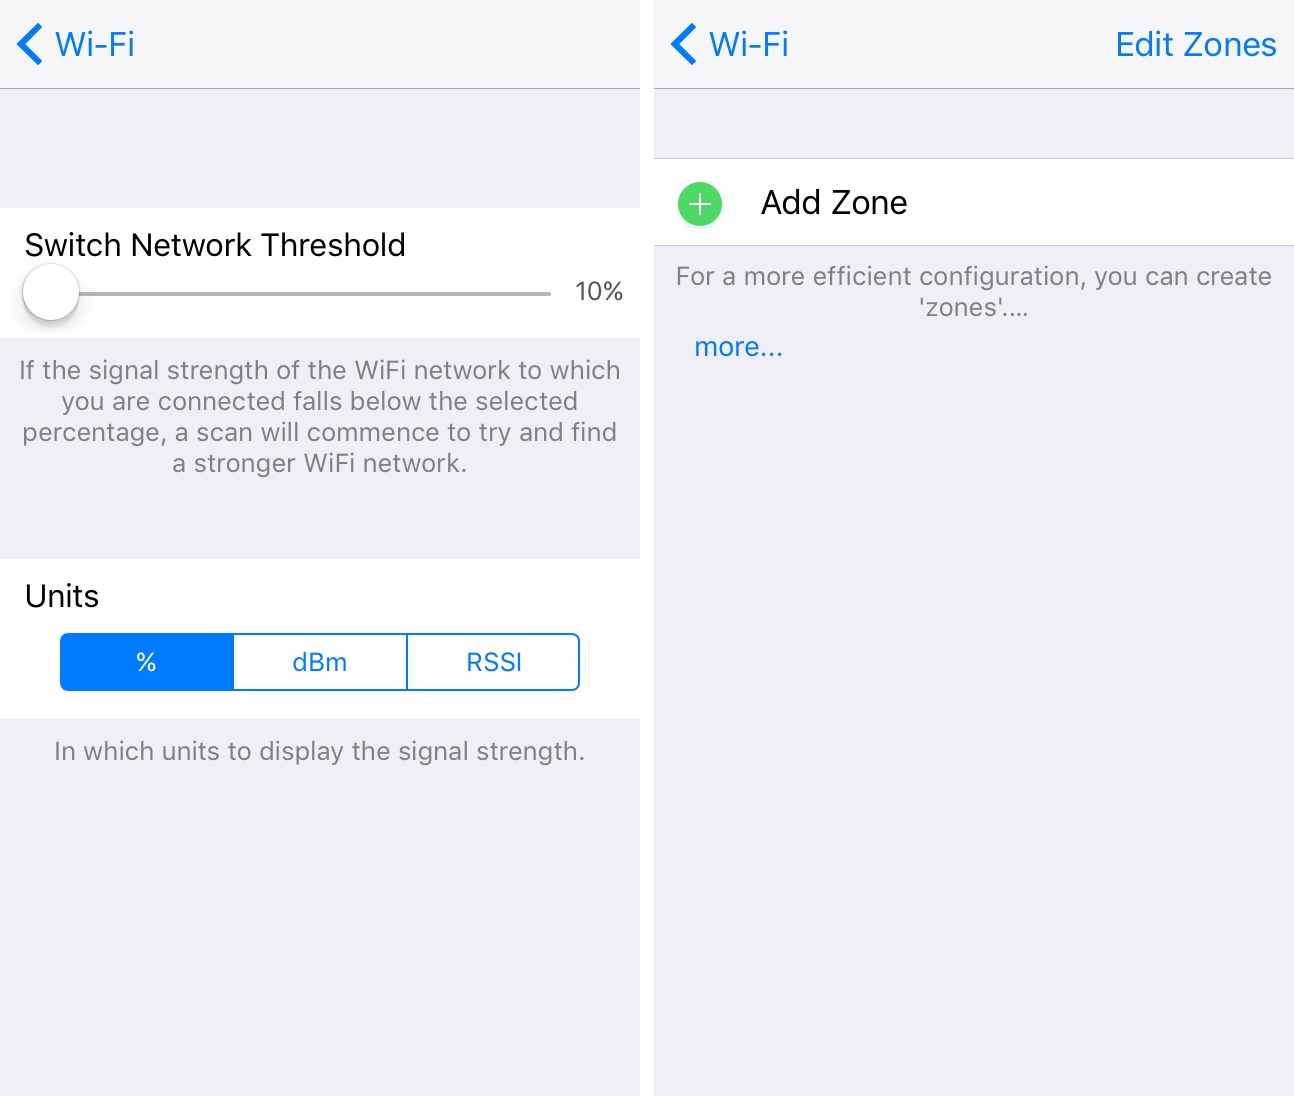 Wi-Fi the strongest link preferences pane 2